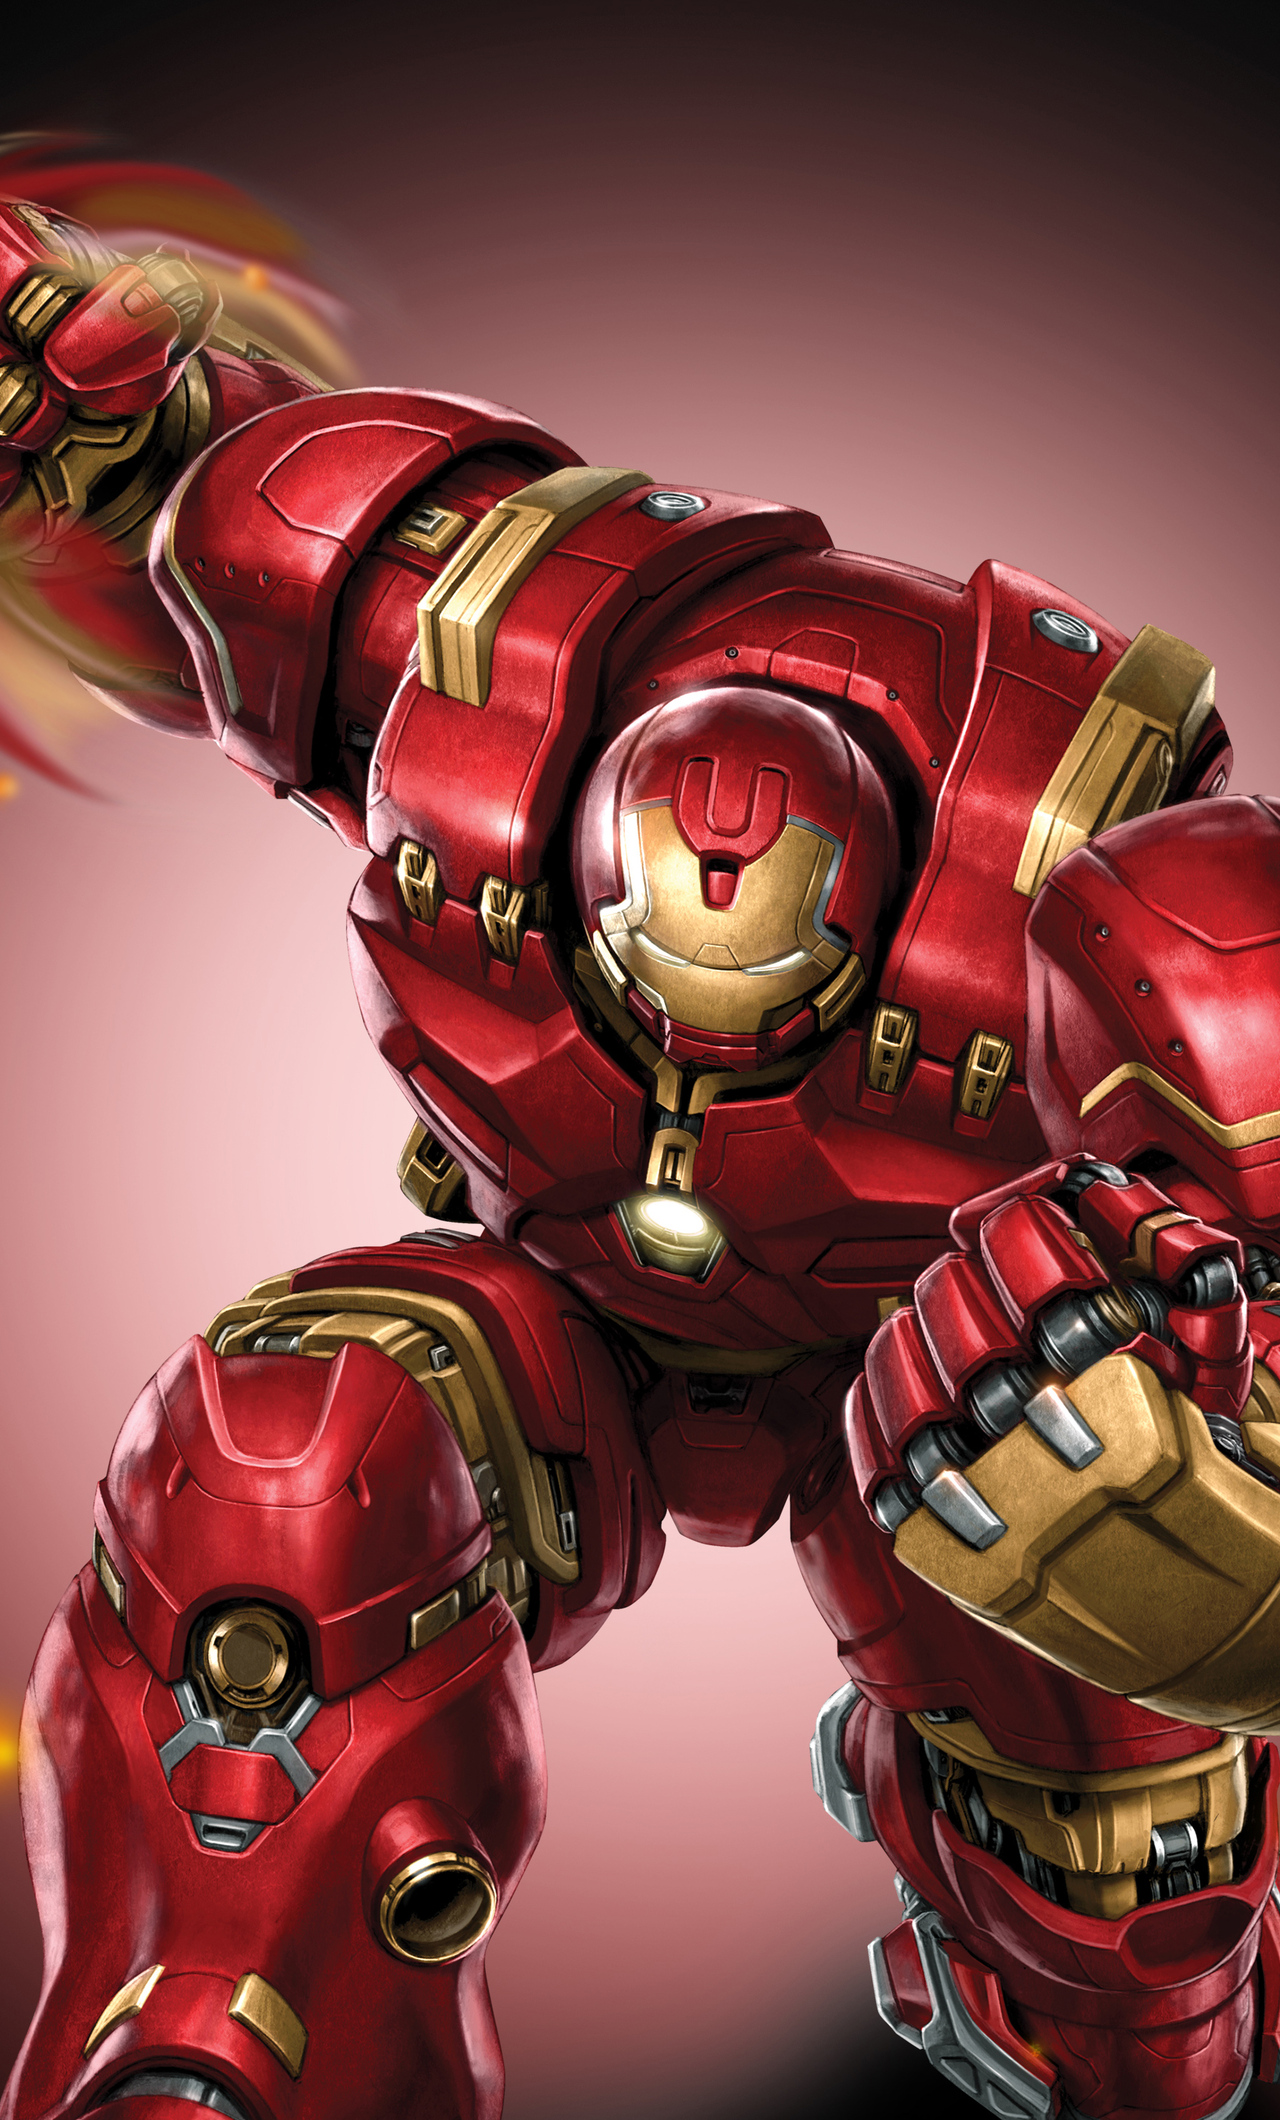 1280x2120 Hulkbuster Iphone 6 Hd 4k Wallpapers Images Backgrounds